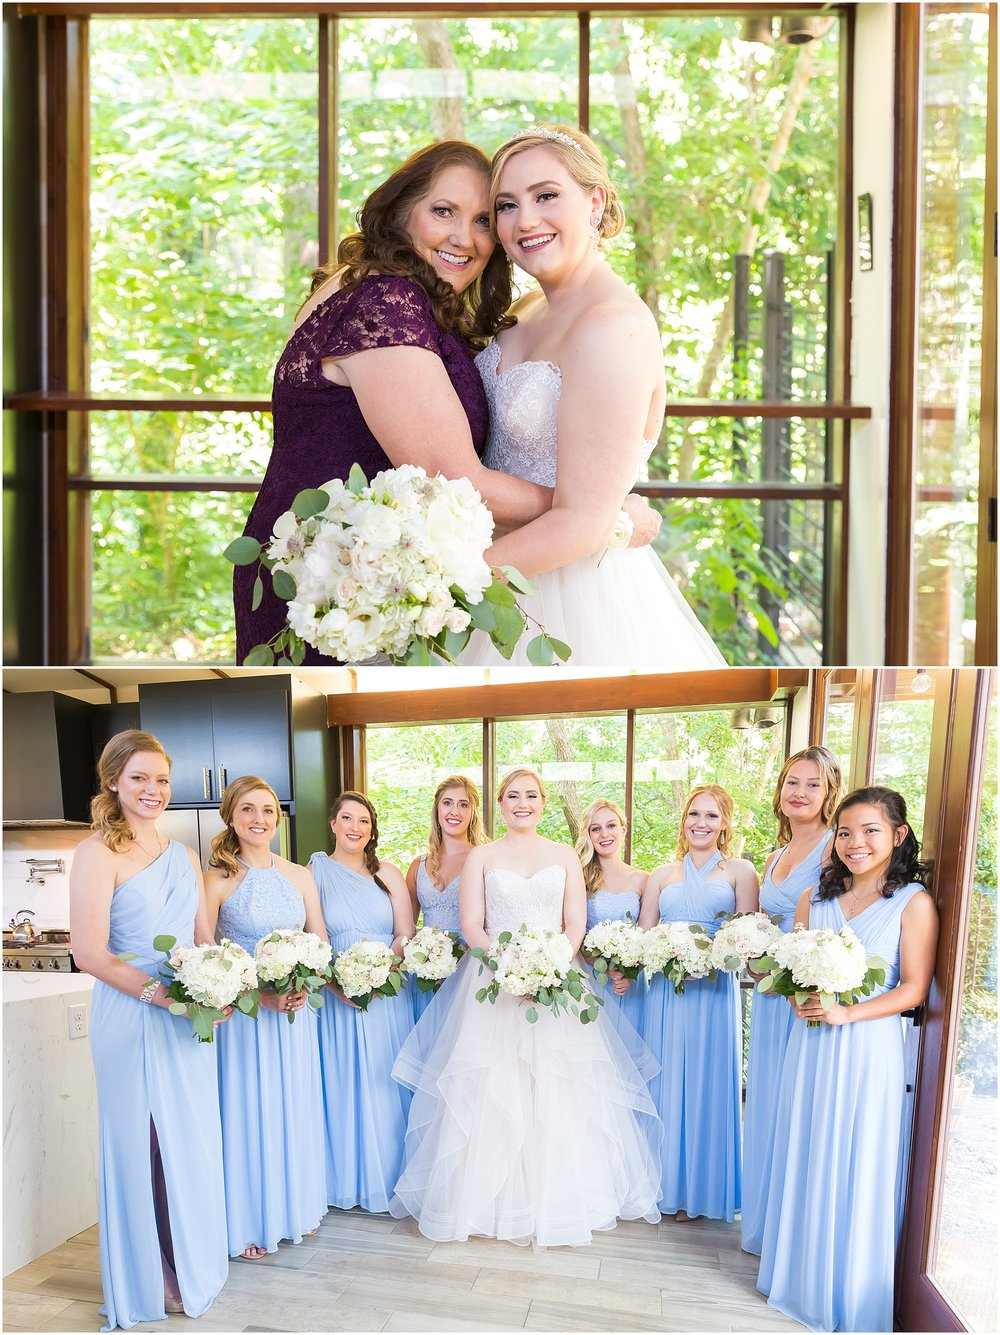 Bridal party at Fixer Upper house in Waco, Texas - www.jasonandmelaina.com